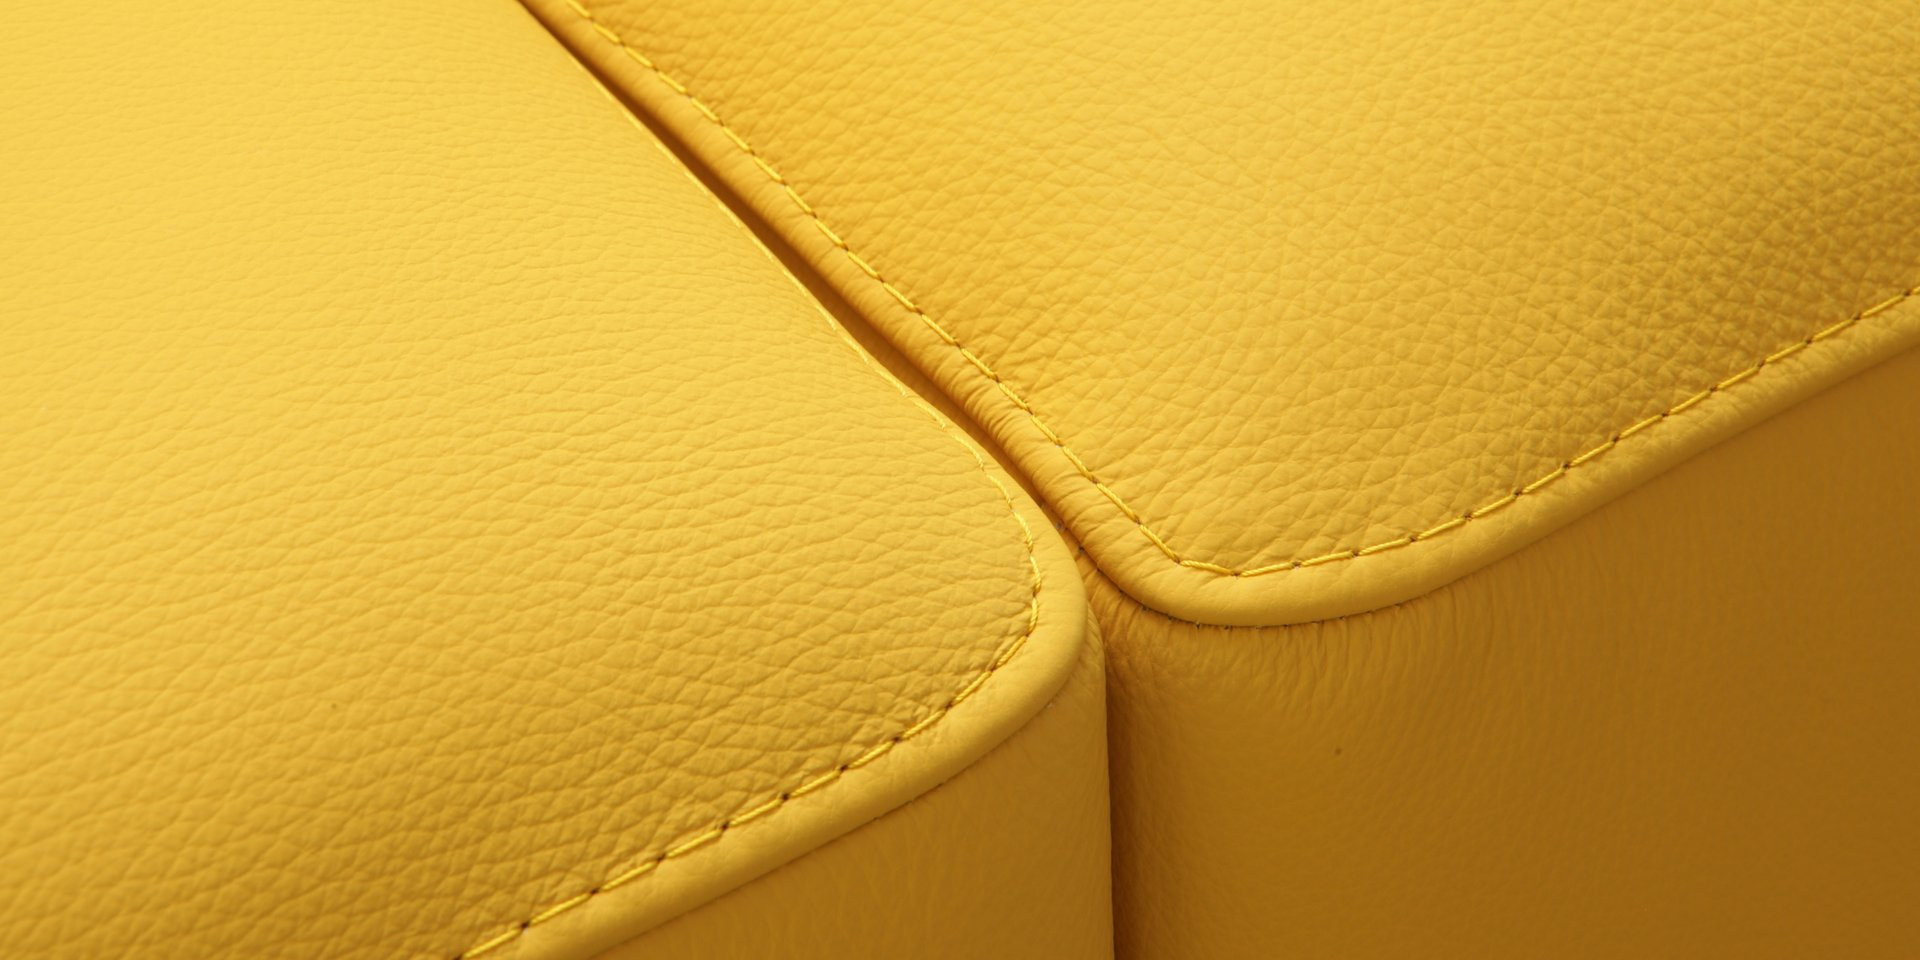 smit zoon _furniture_yellow.jpg